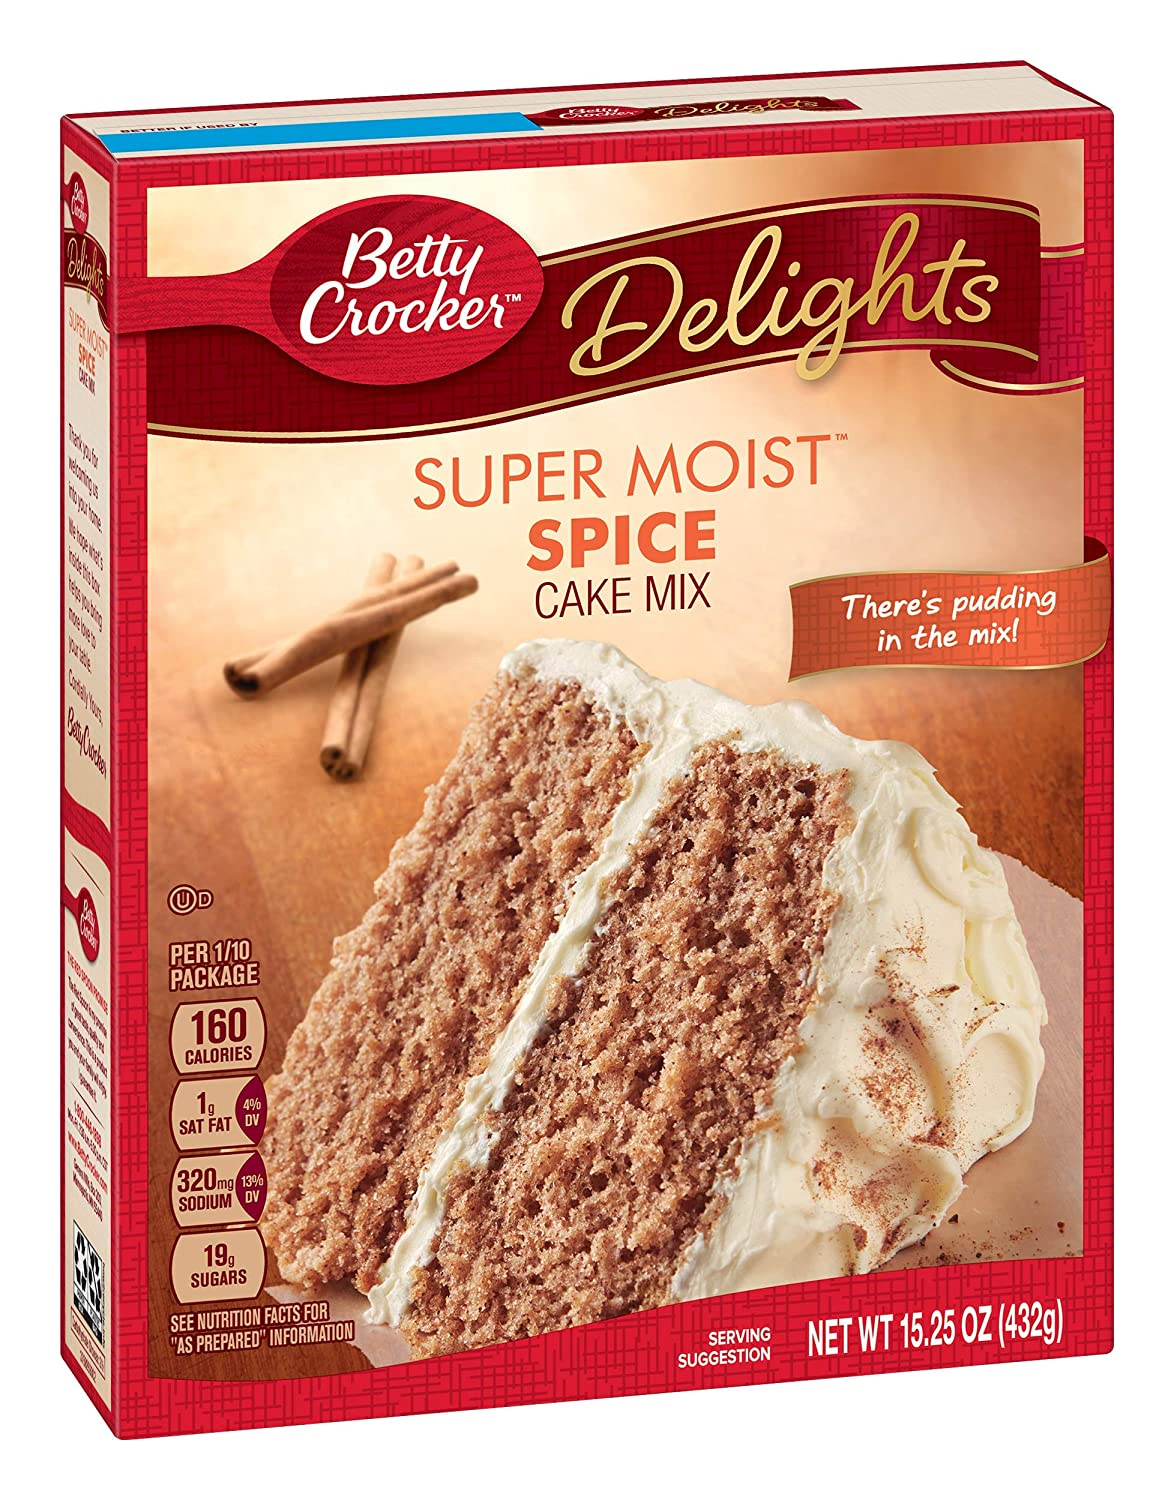 Betty Crocker Super Moist Cake Mix Spice 15.25 oz Box